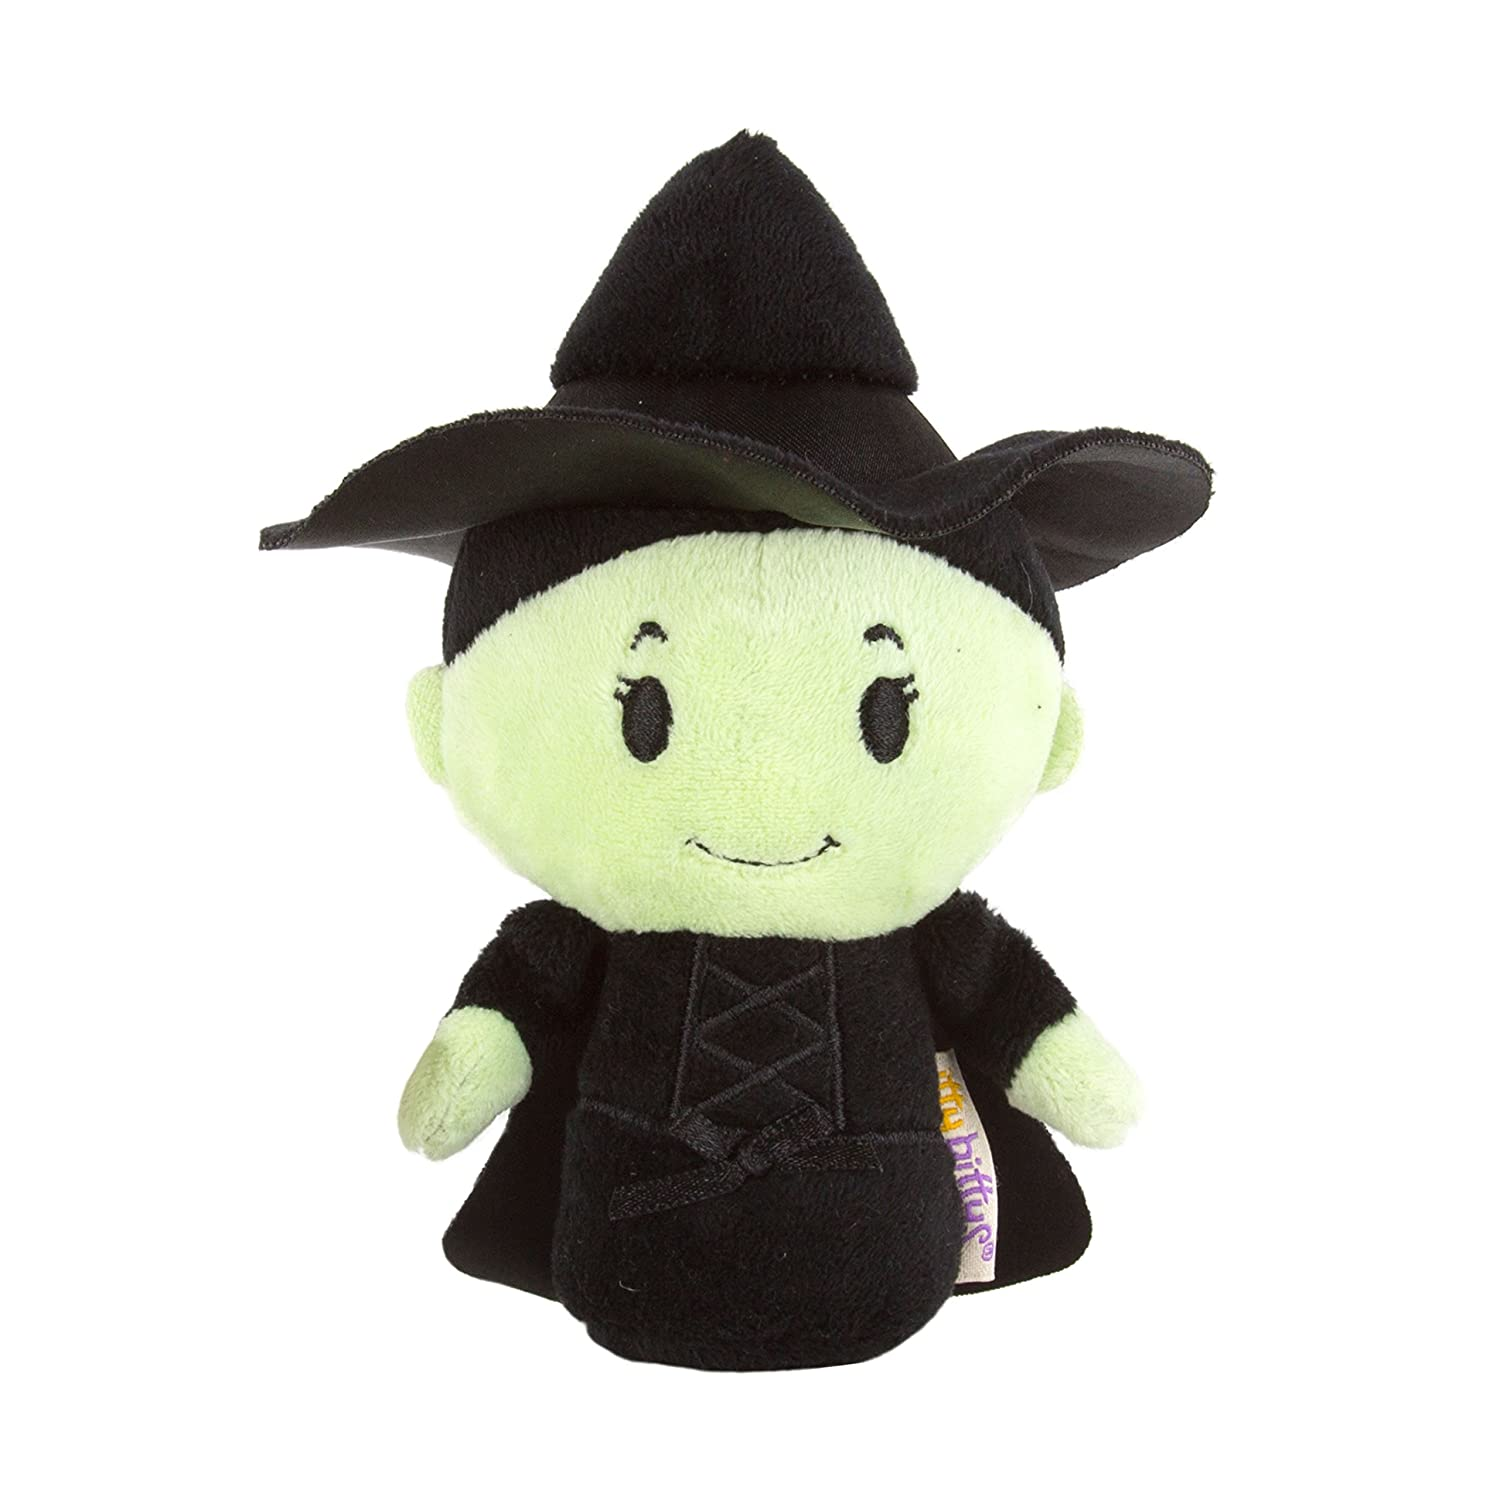 Amazon.com: Wicked Witch Of The West Itty Bittys Limited Edition: Toys & Games